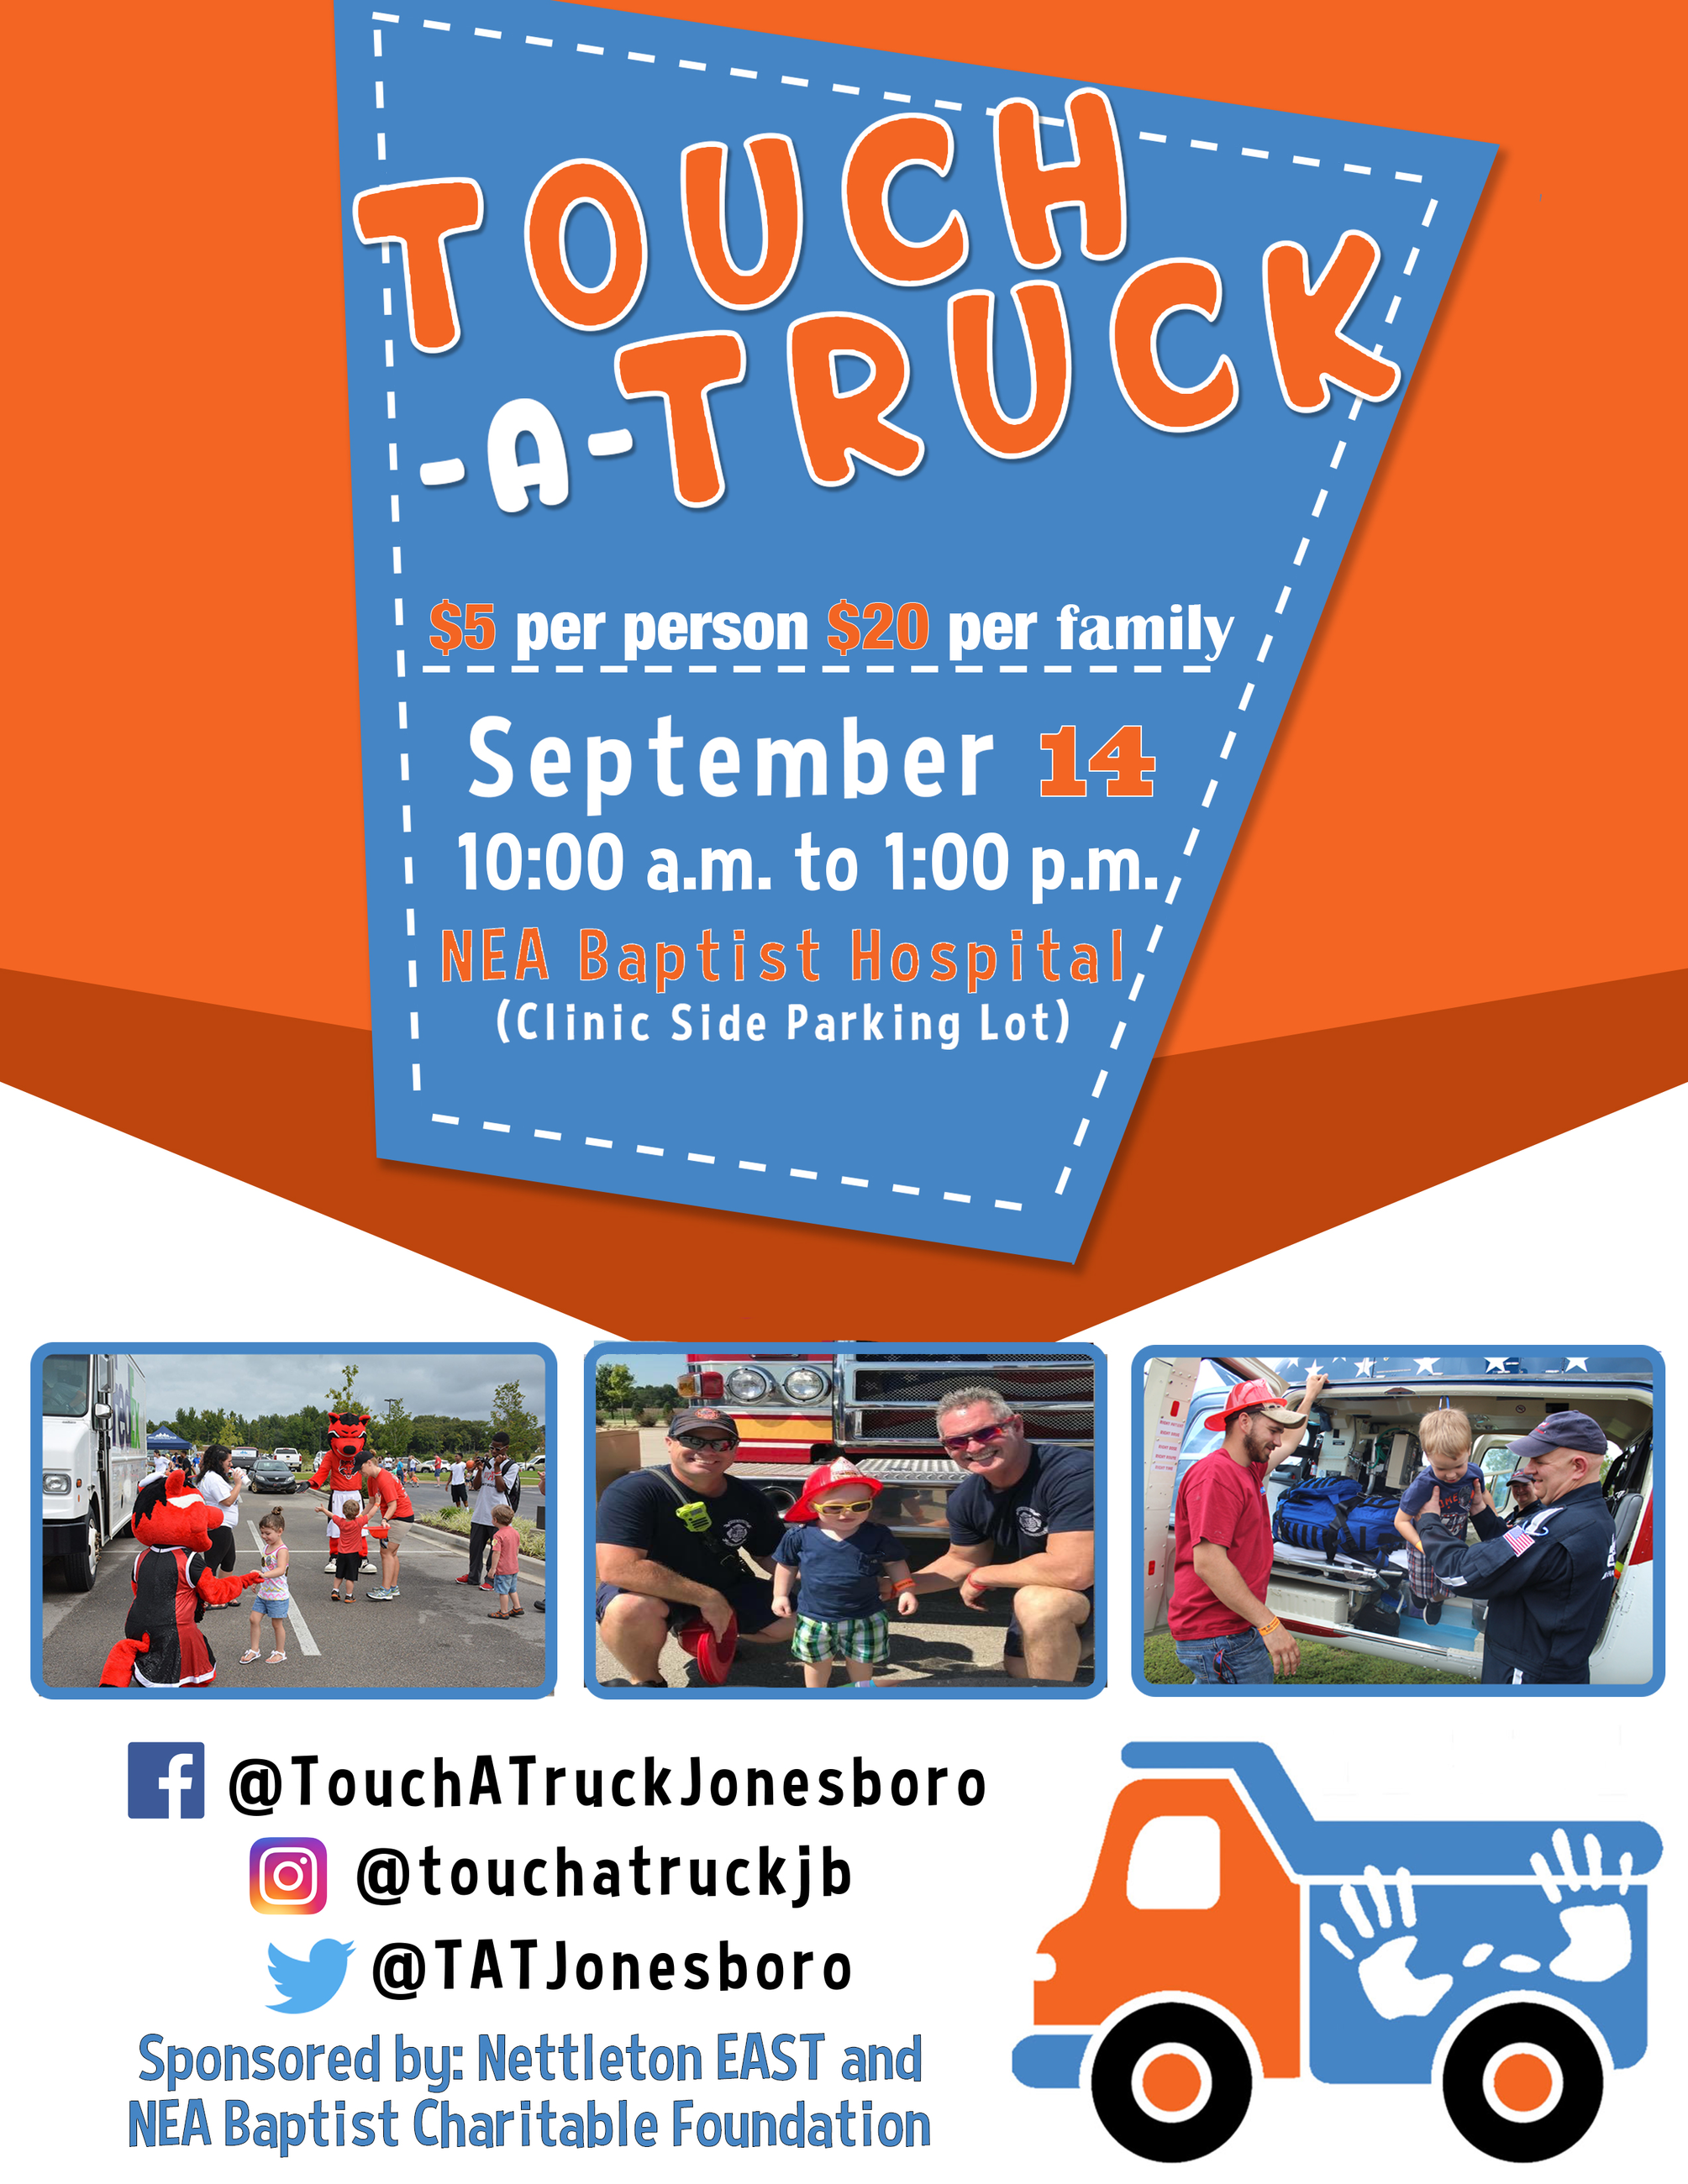 Touch A Truck is $5 per person and $20 per family on September 14, 2019 from 10 to 1 at NEA Baptist